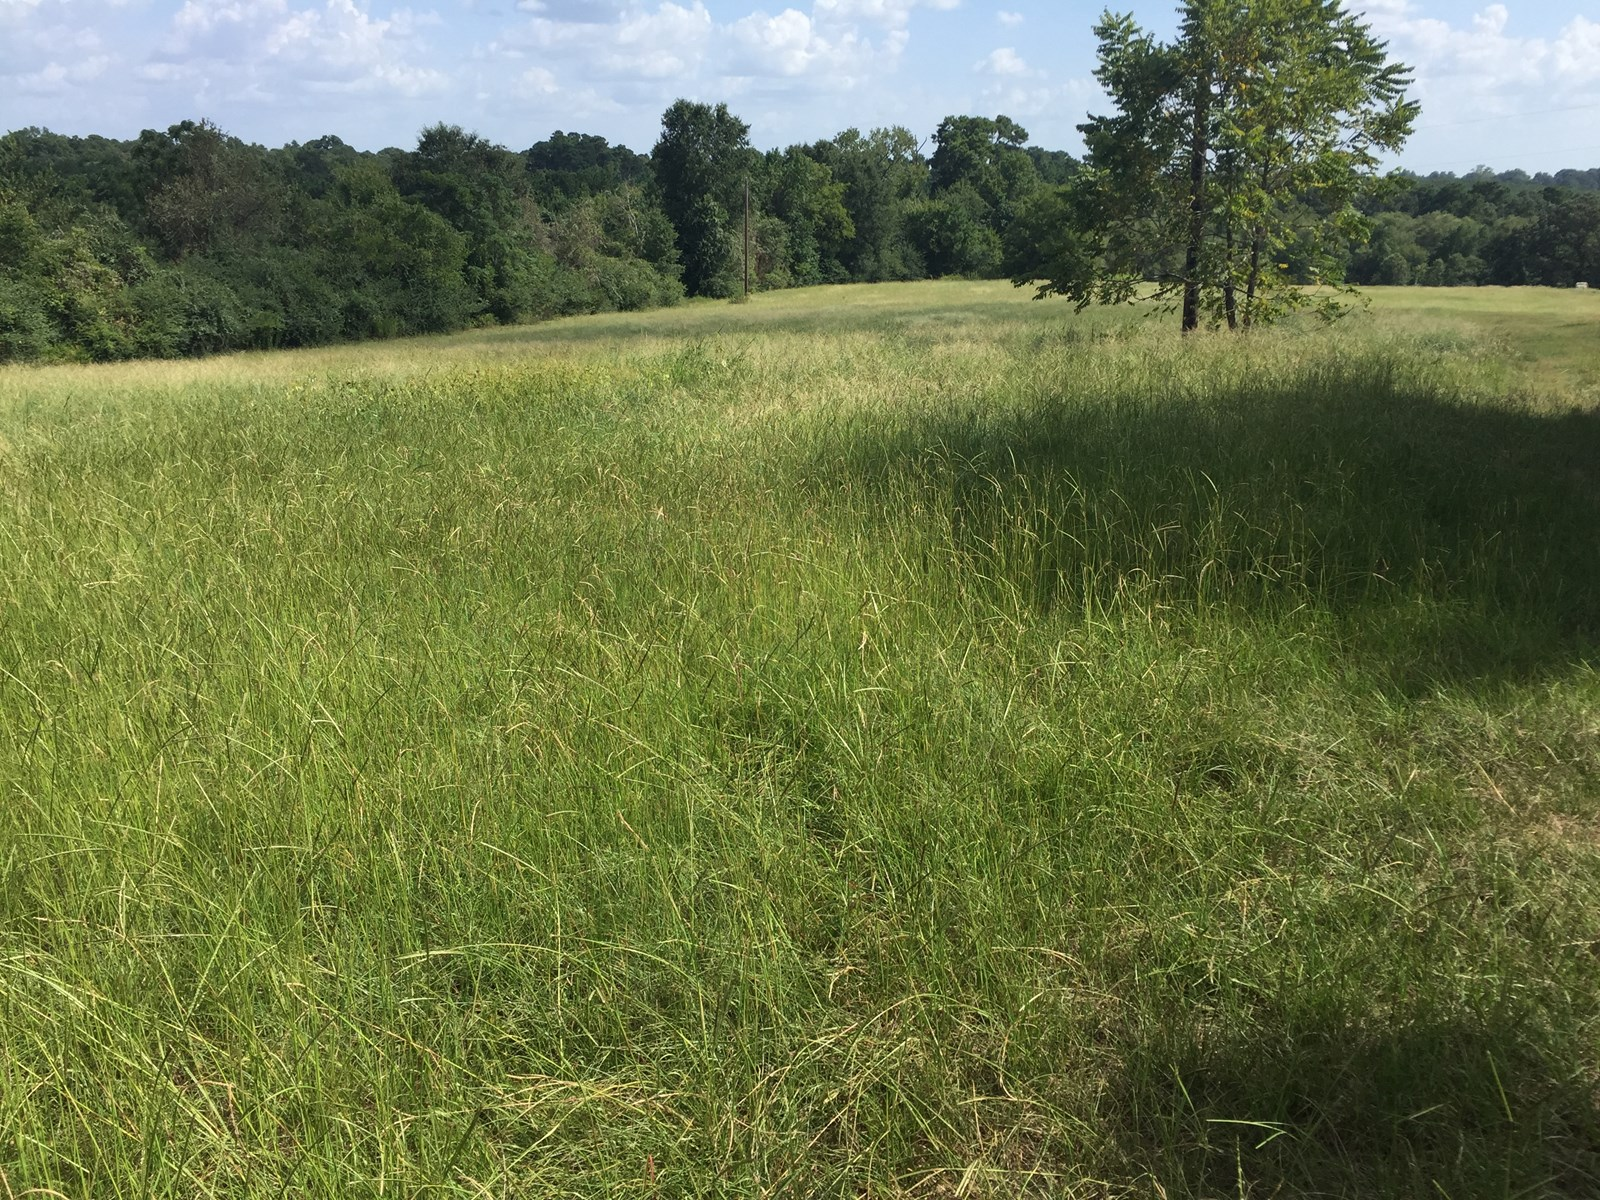 East Texas Hunting/Pasture/Recreation Real Estate For Sale